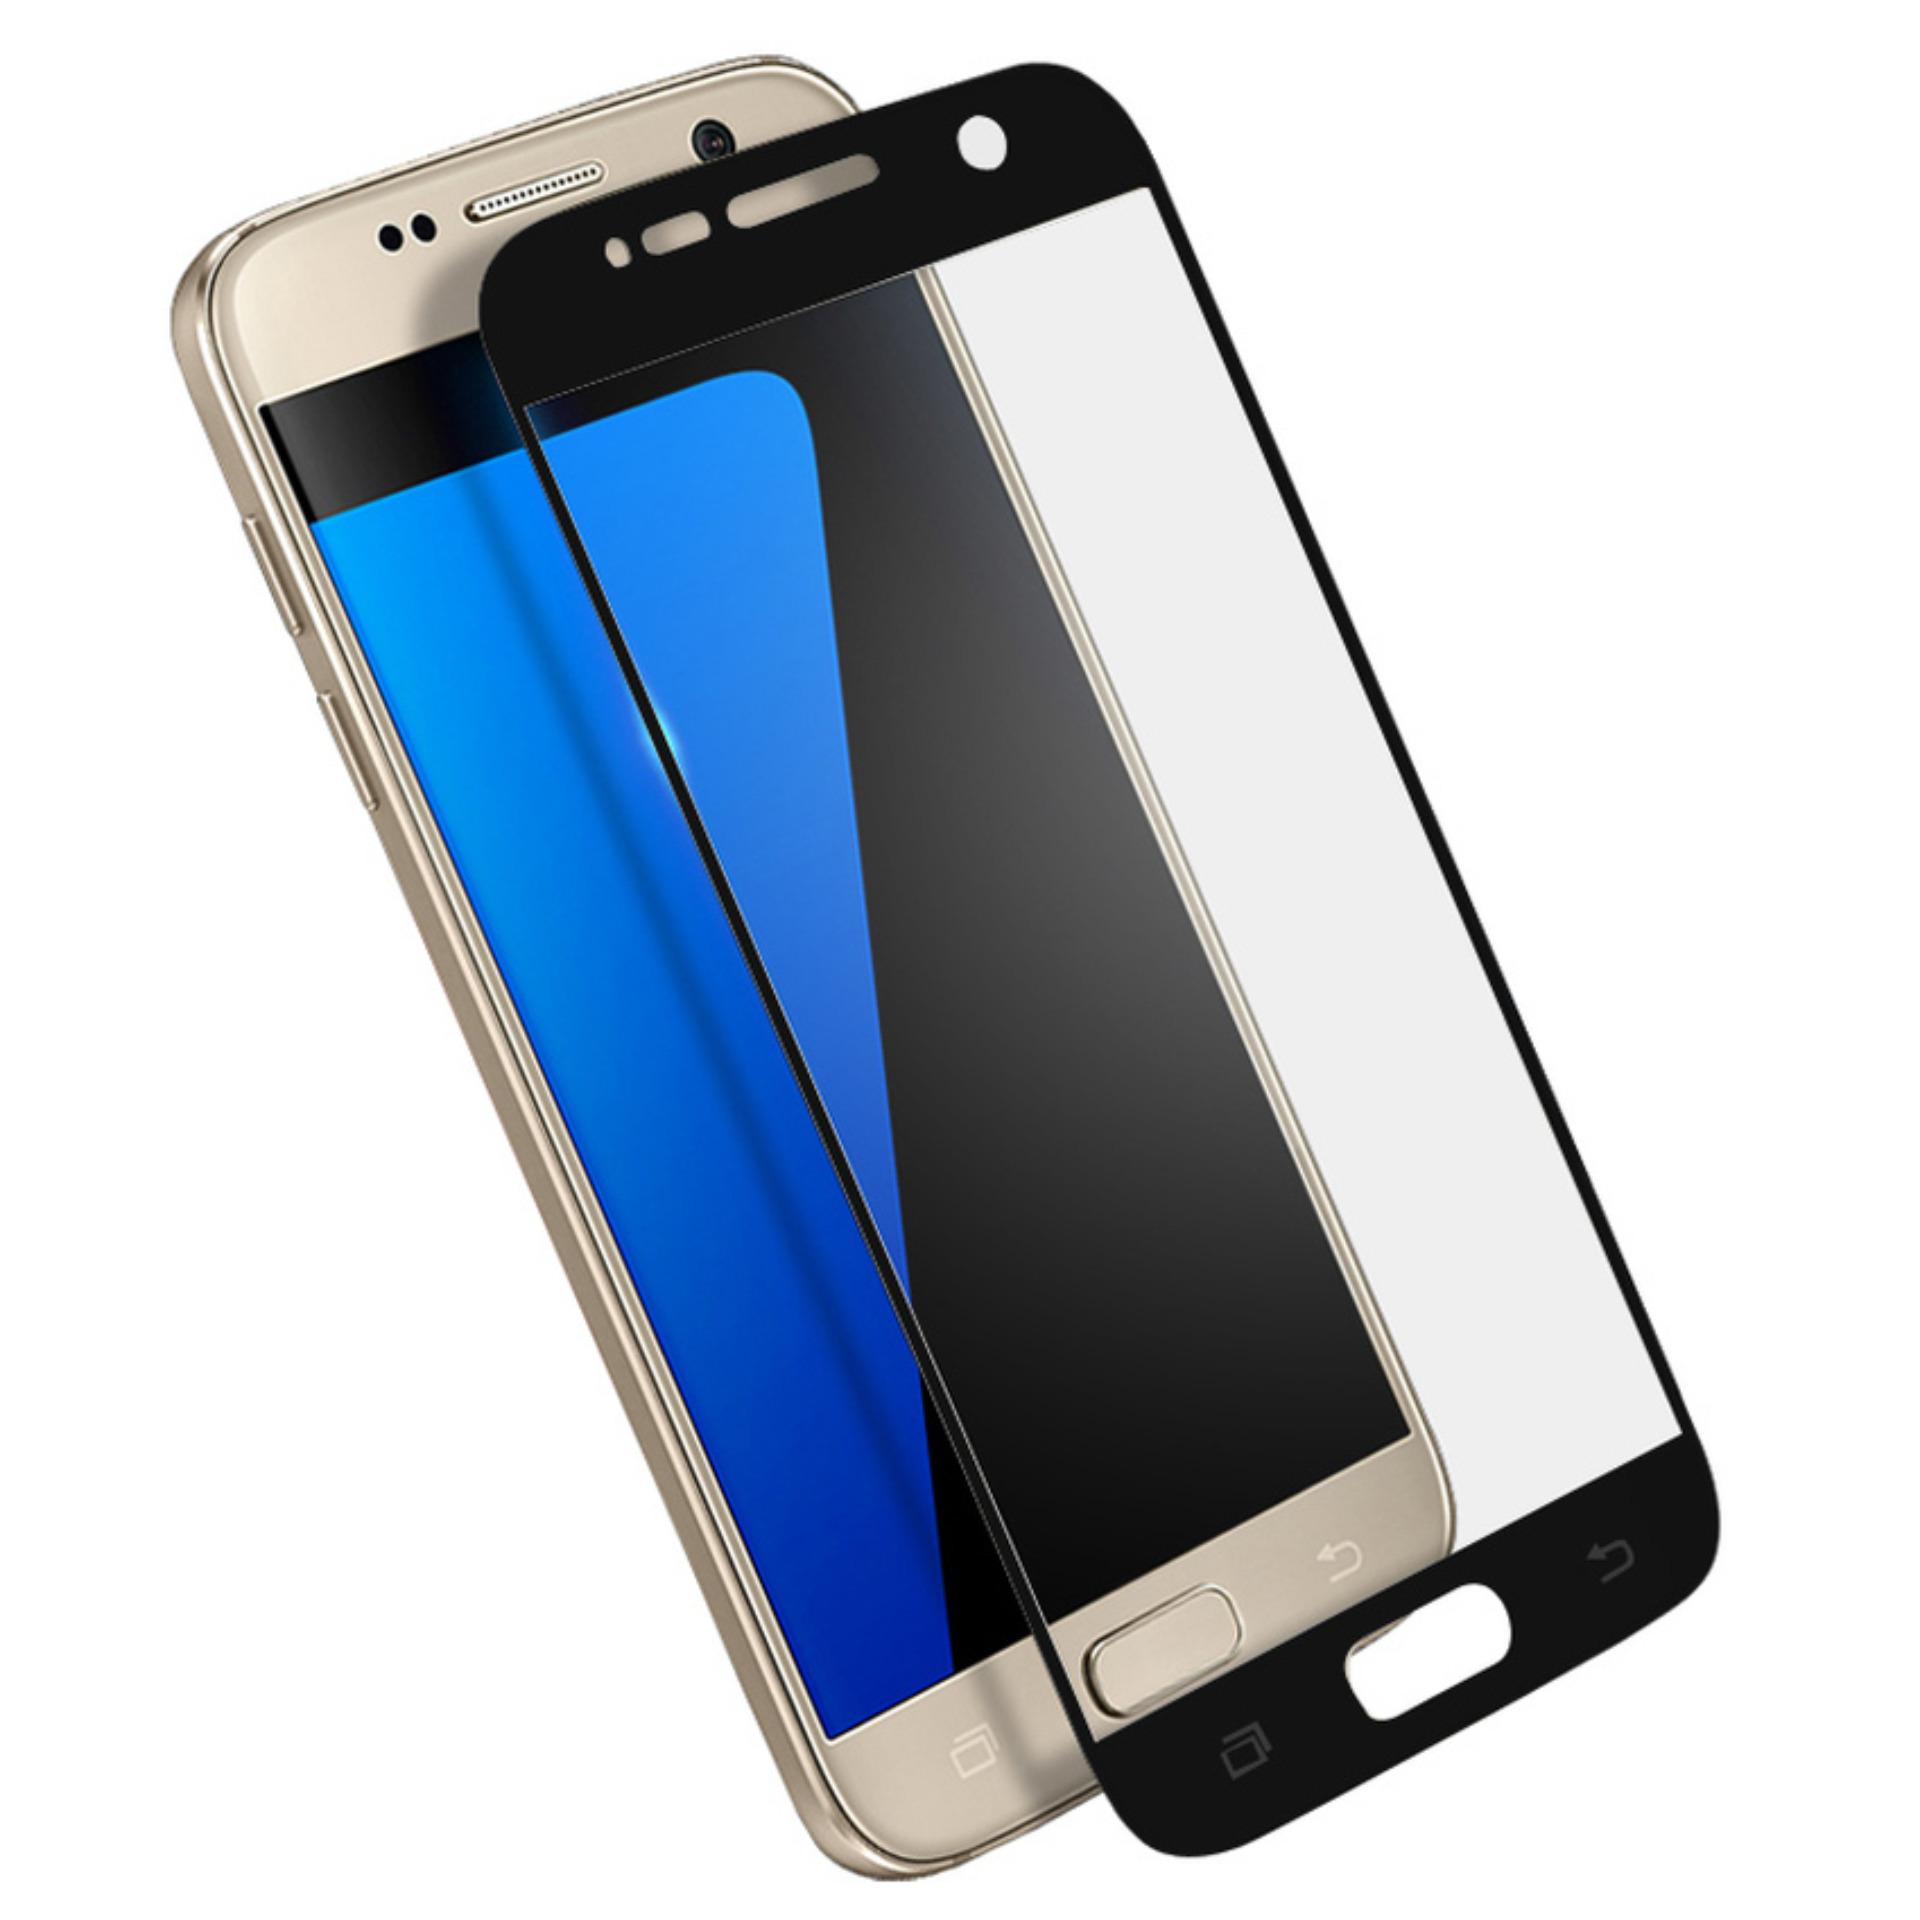 Vn Full Cover Samsung Galaxy S6 Flat (G920) / LTE / Duos | Premium 9H Tempered Glass 4D Screen Protector Film 0.32mm - Hitam